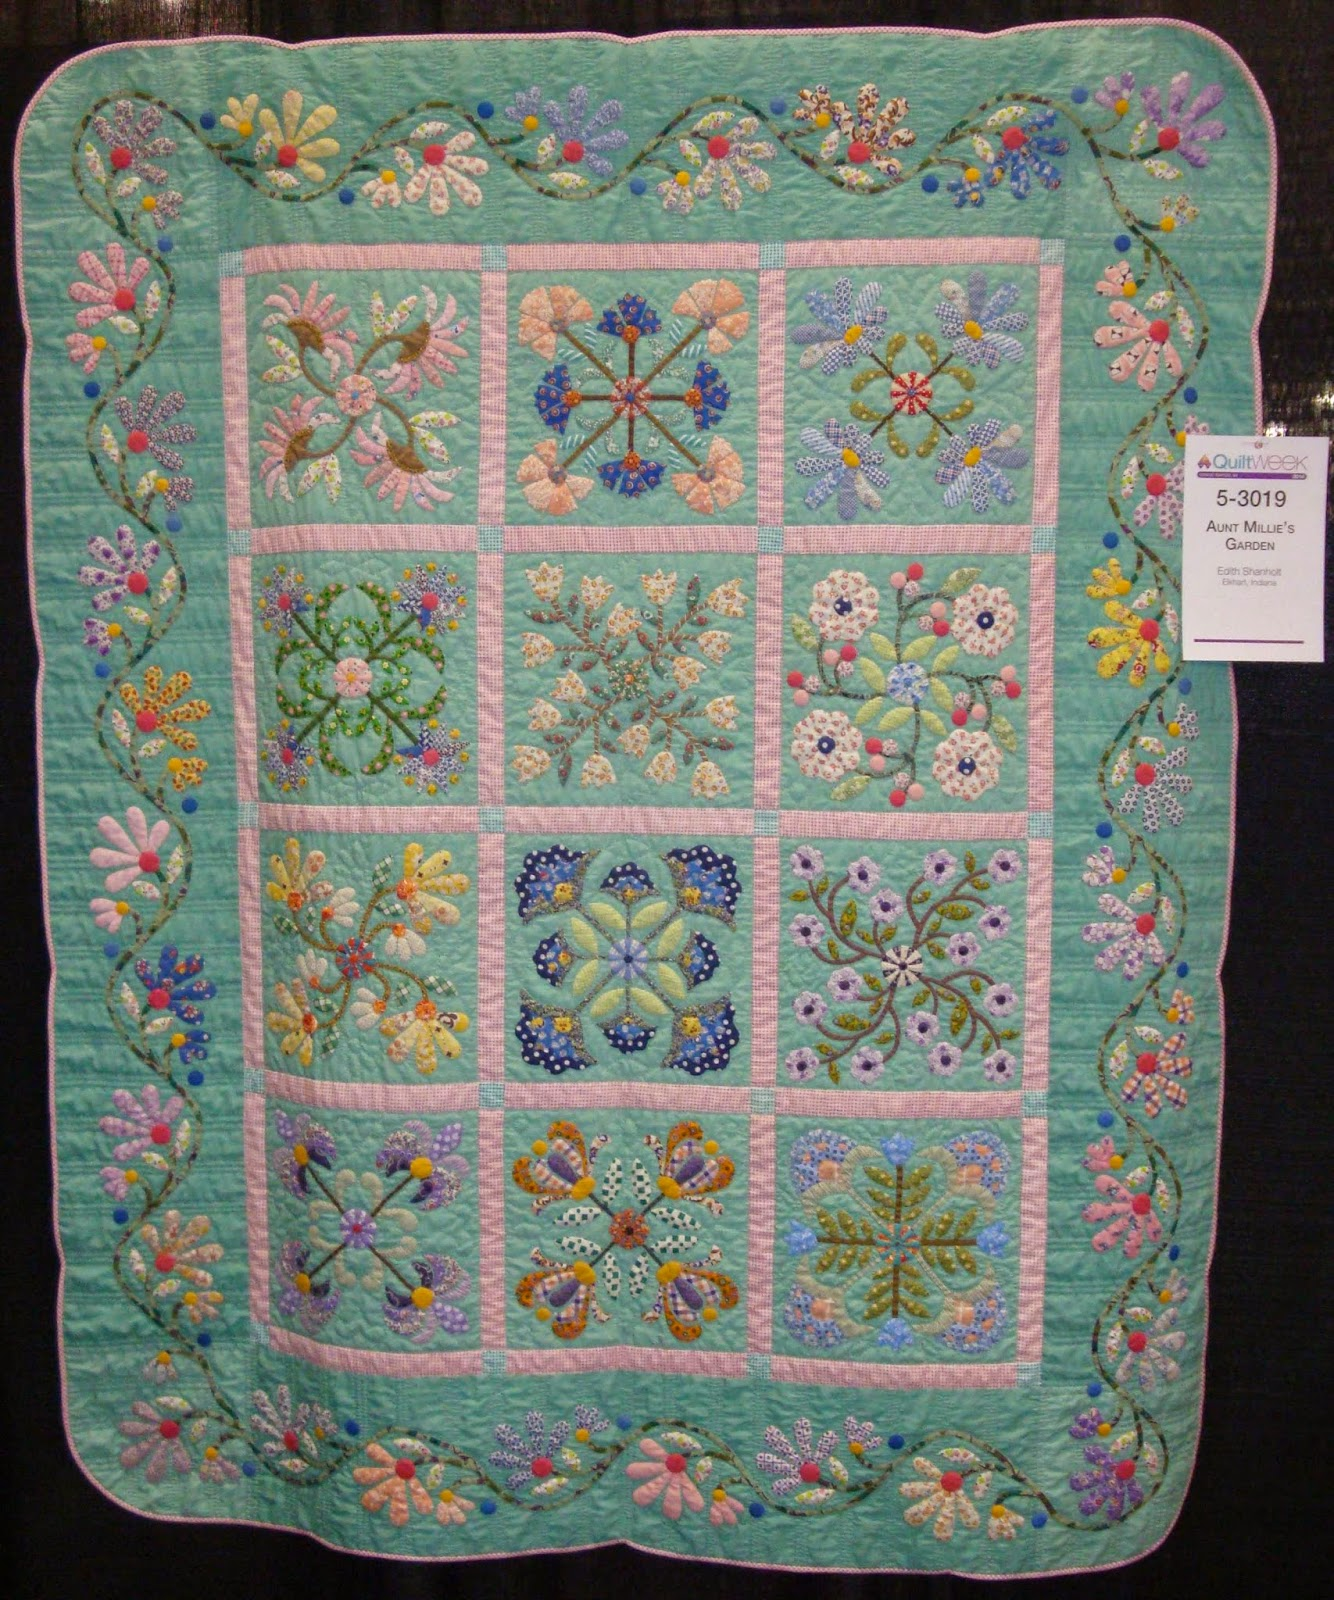 FABRIC THERAPY: 2014 AQS Grand Rapids Quilt Show...Part TWO : grand rapids quilt show - Adamdwight.com